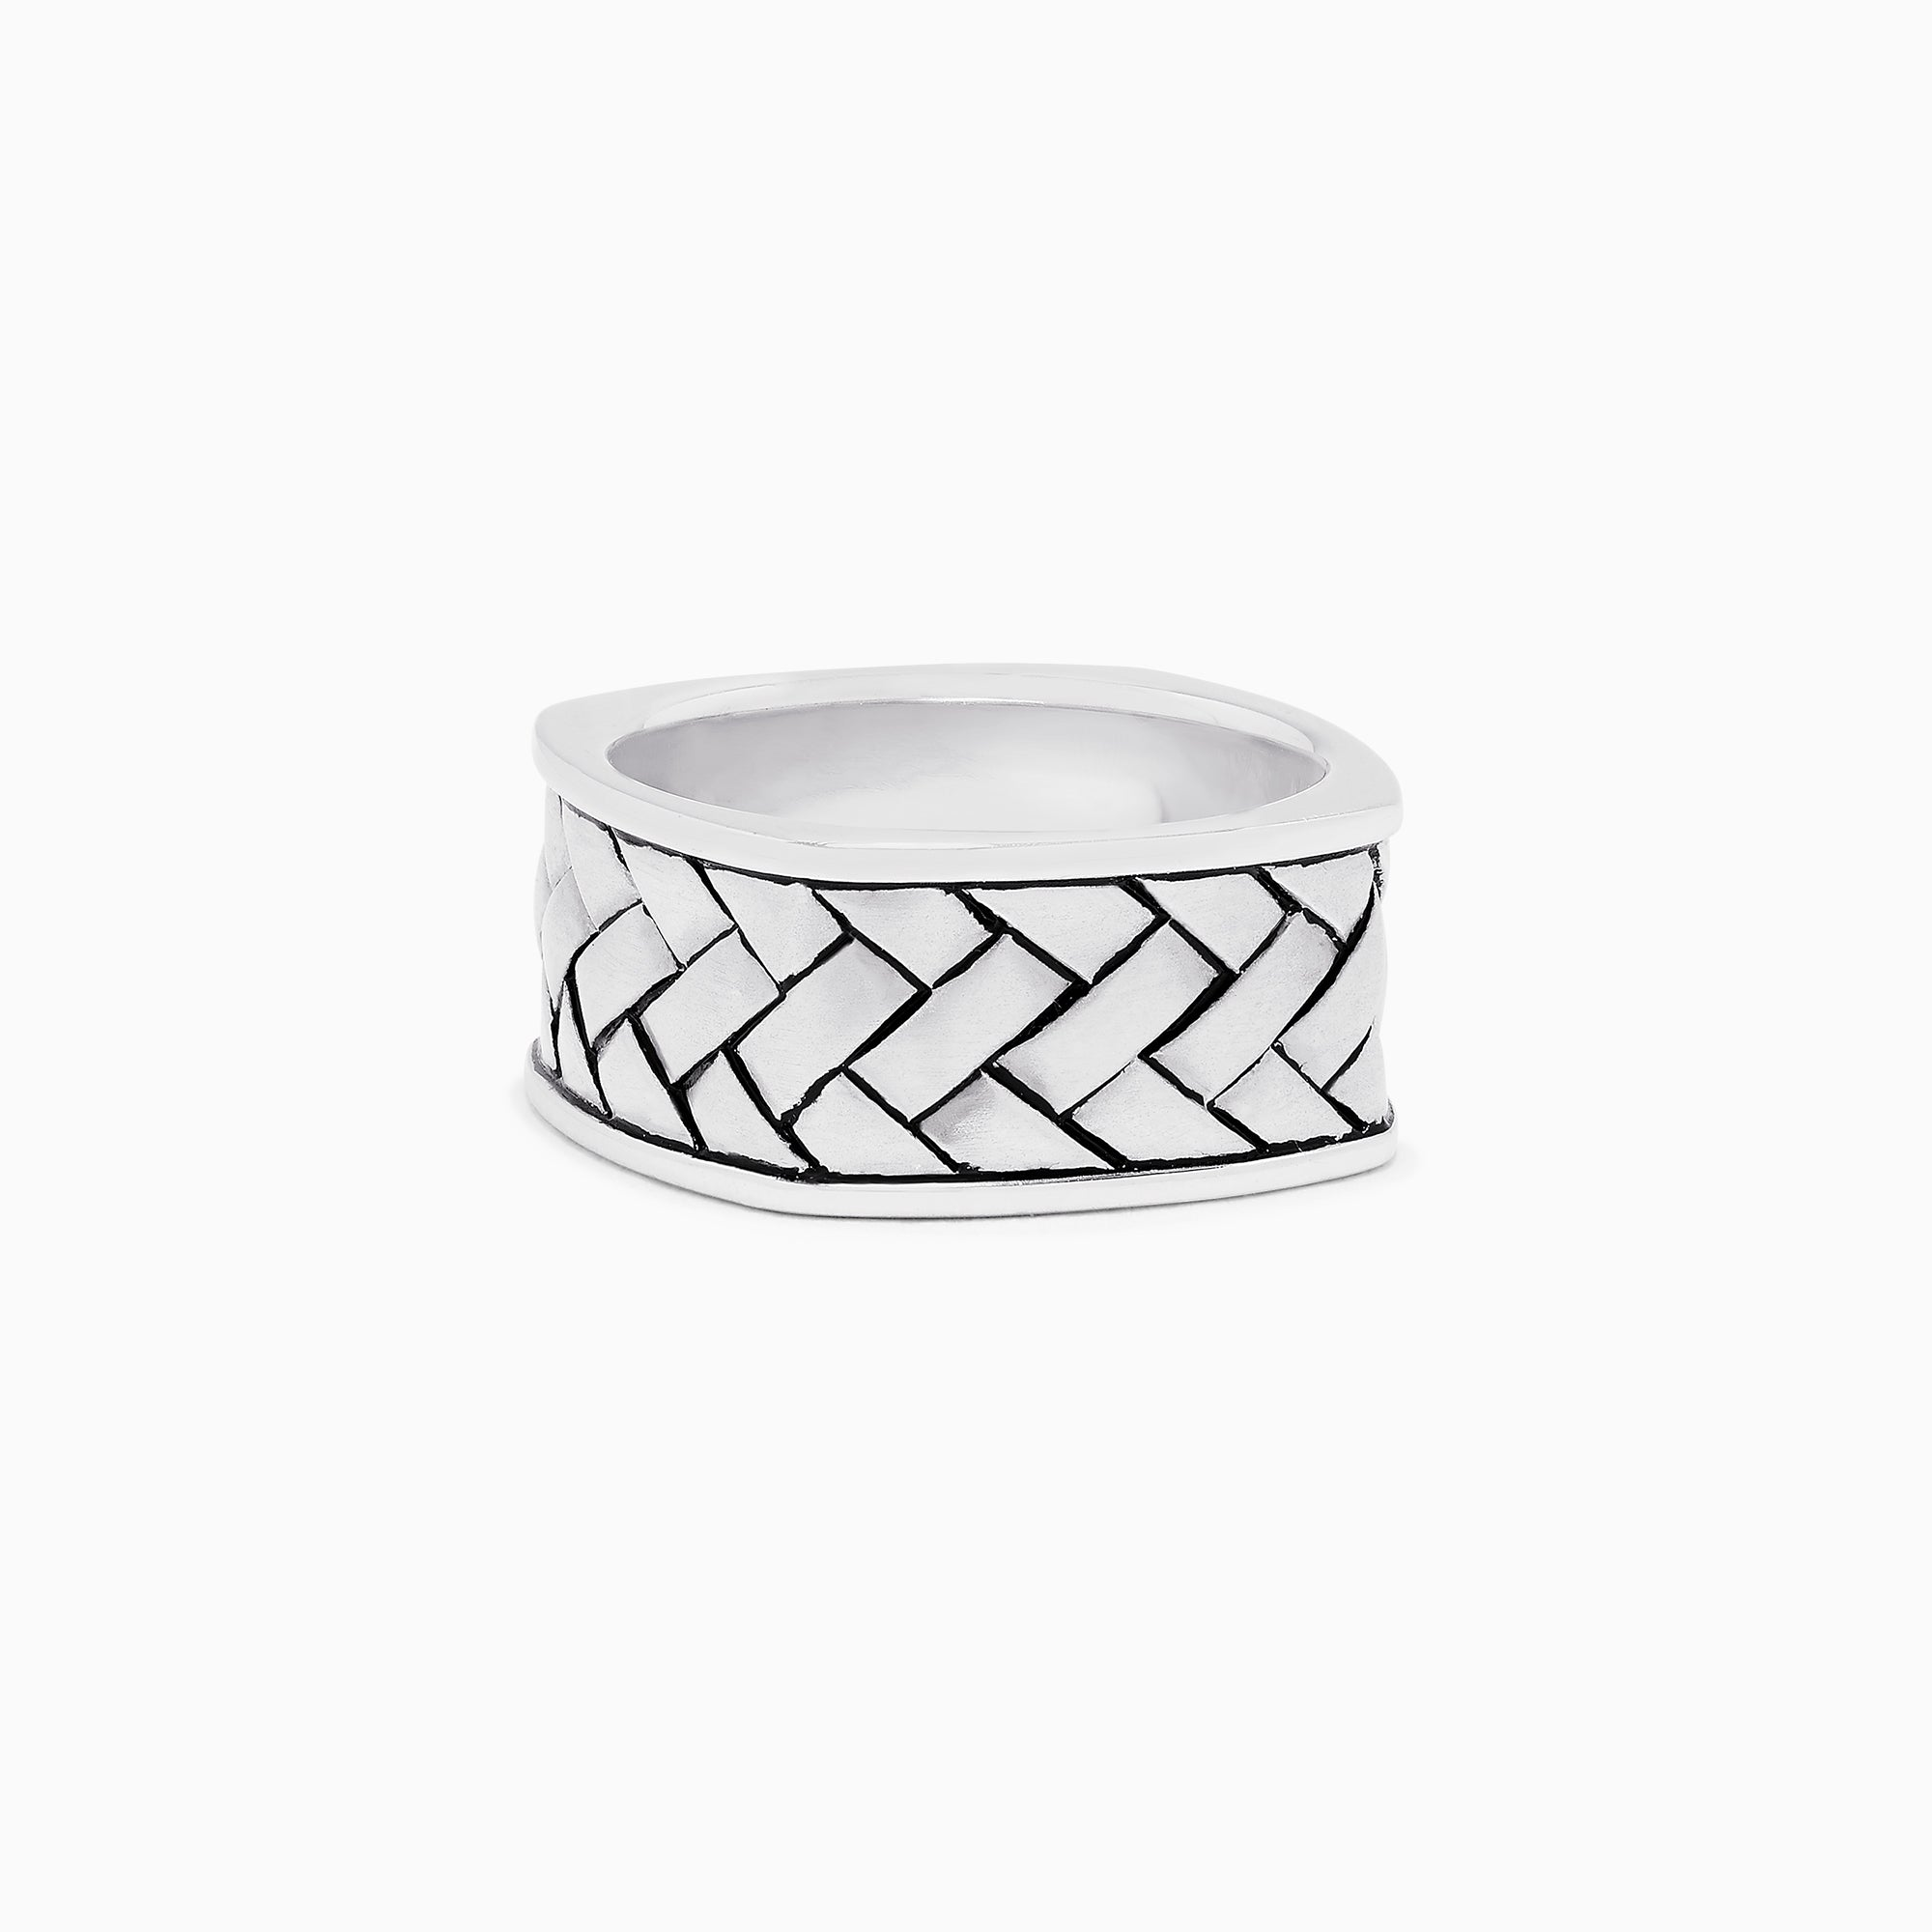 Effy Men's 925 Sterling Silver Ring, Size 10